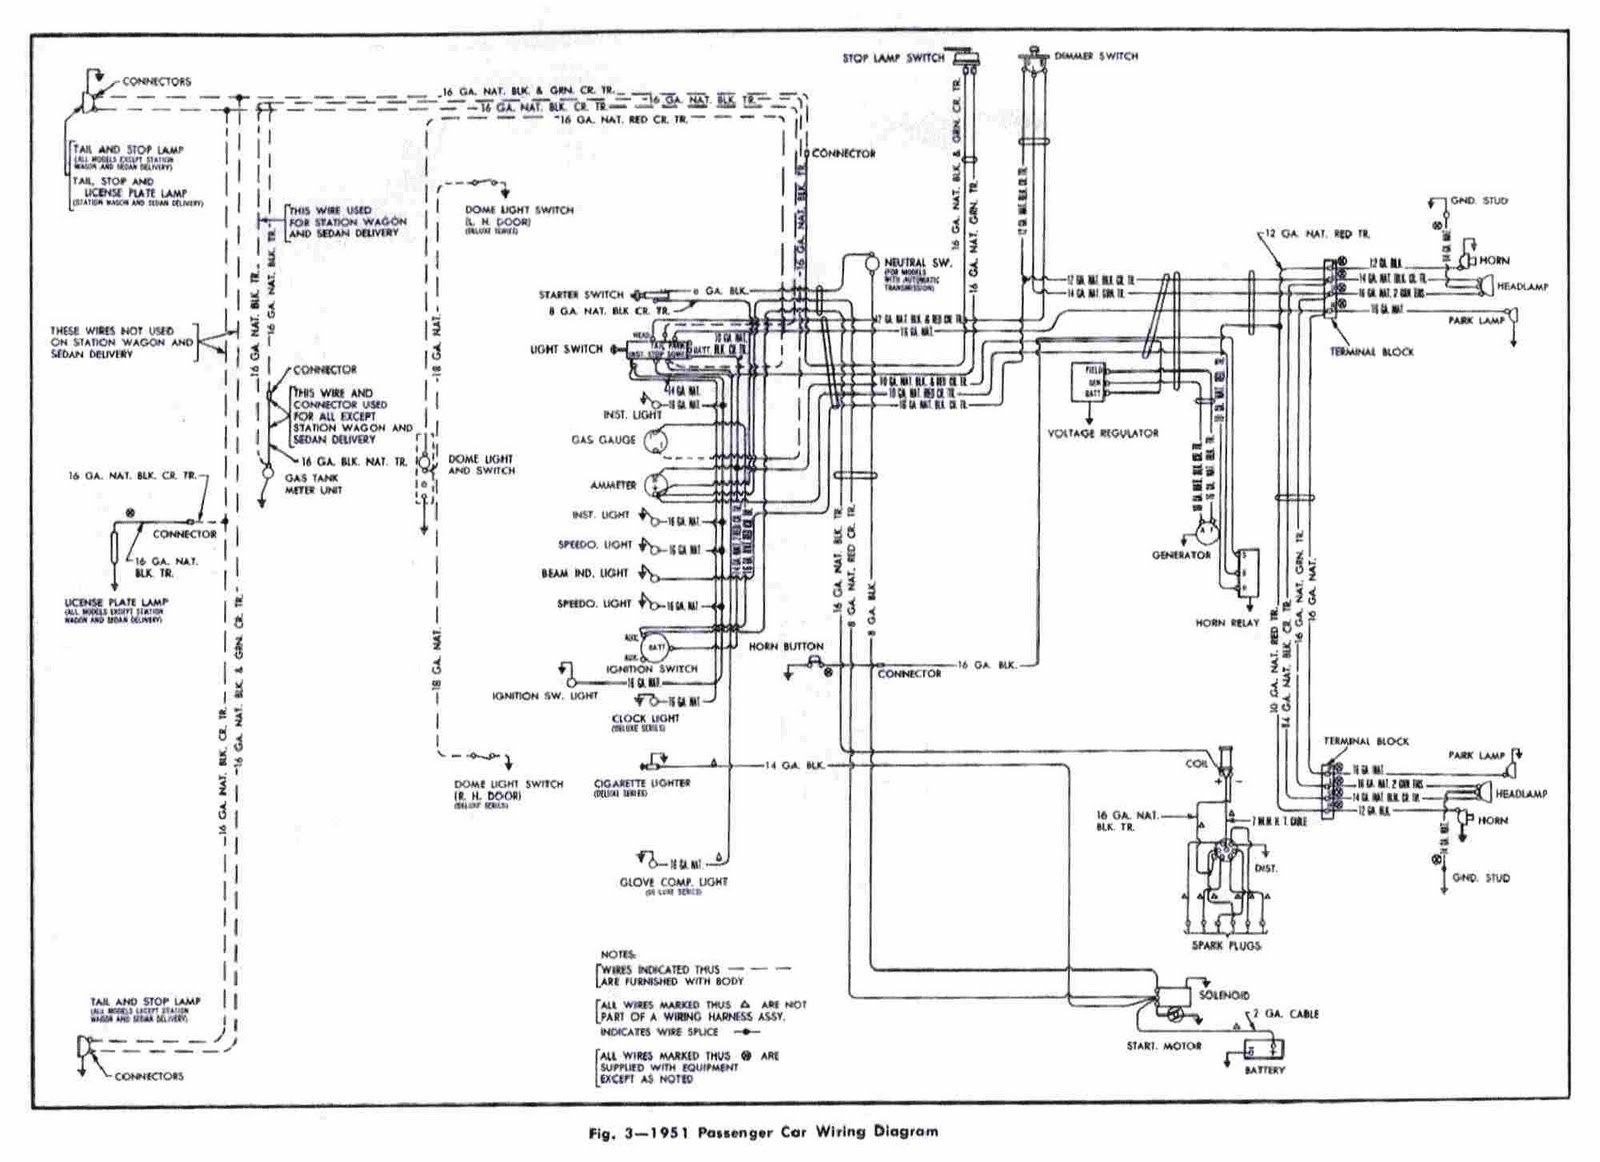 is a diagram for that alternator do not omit the 10 ga ground wire